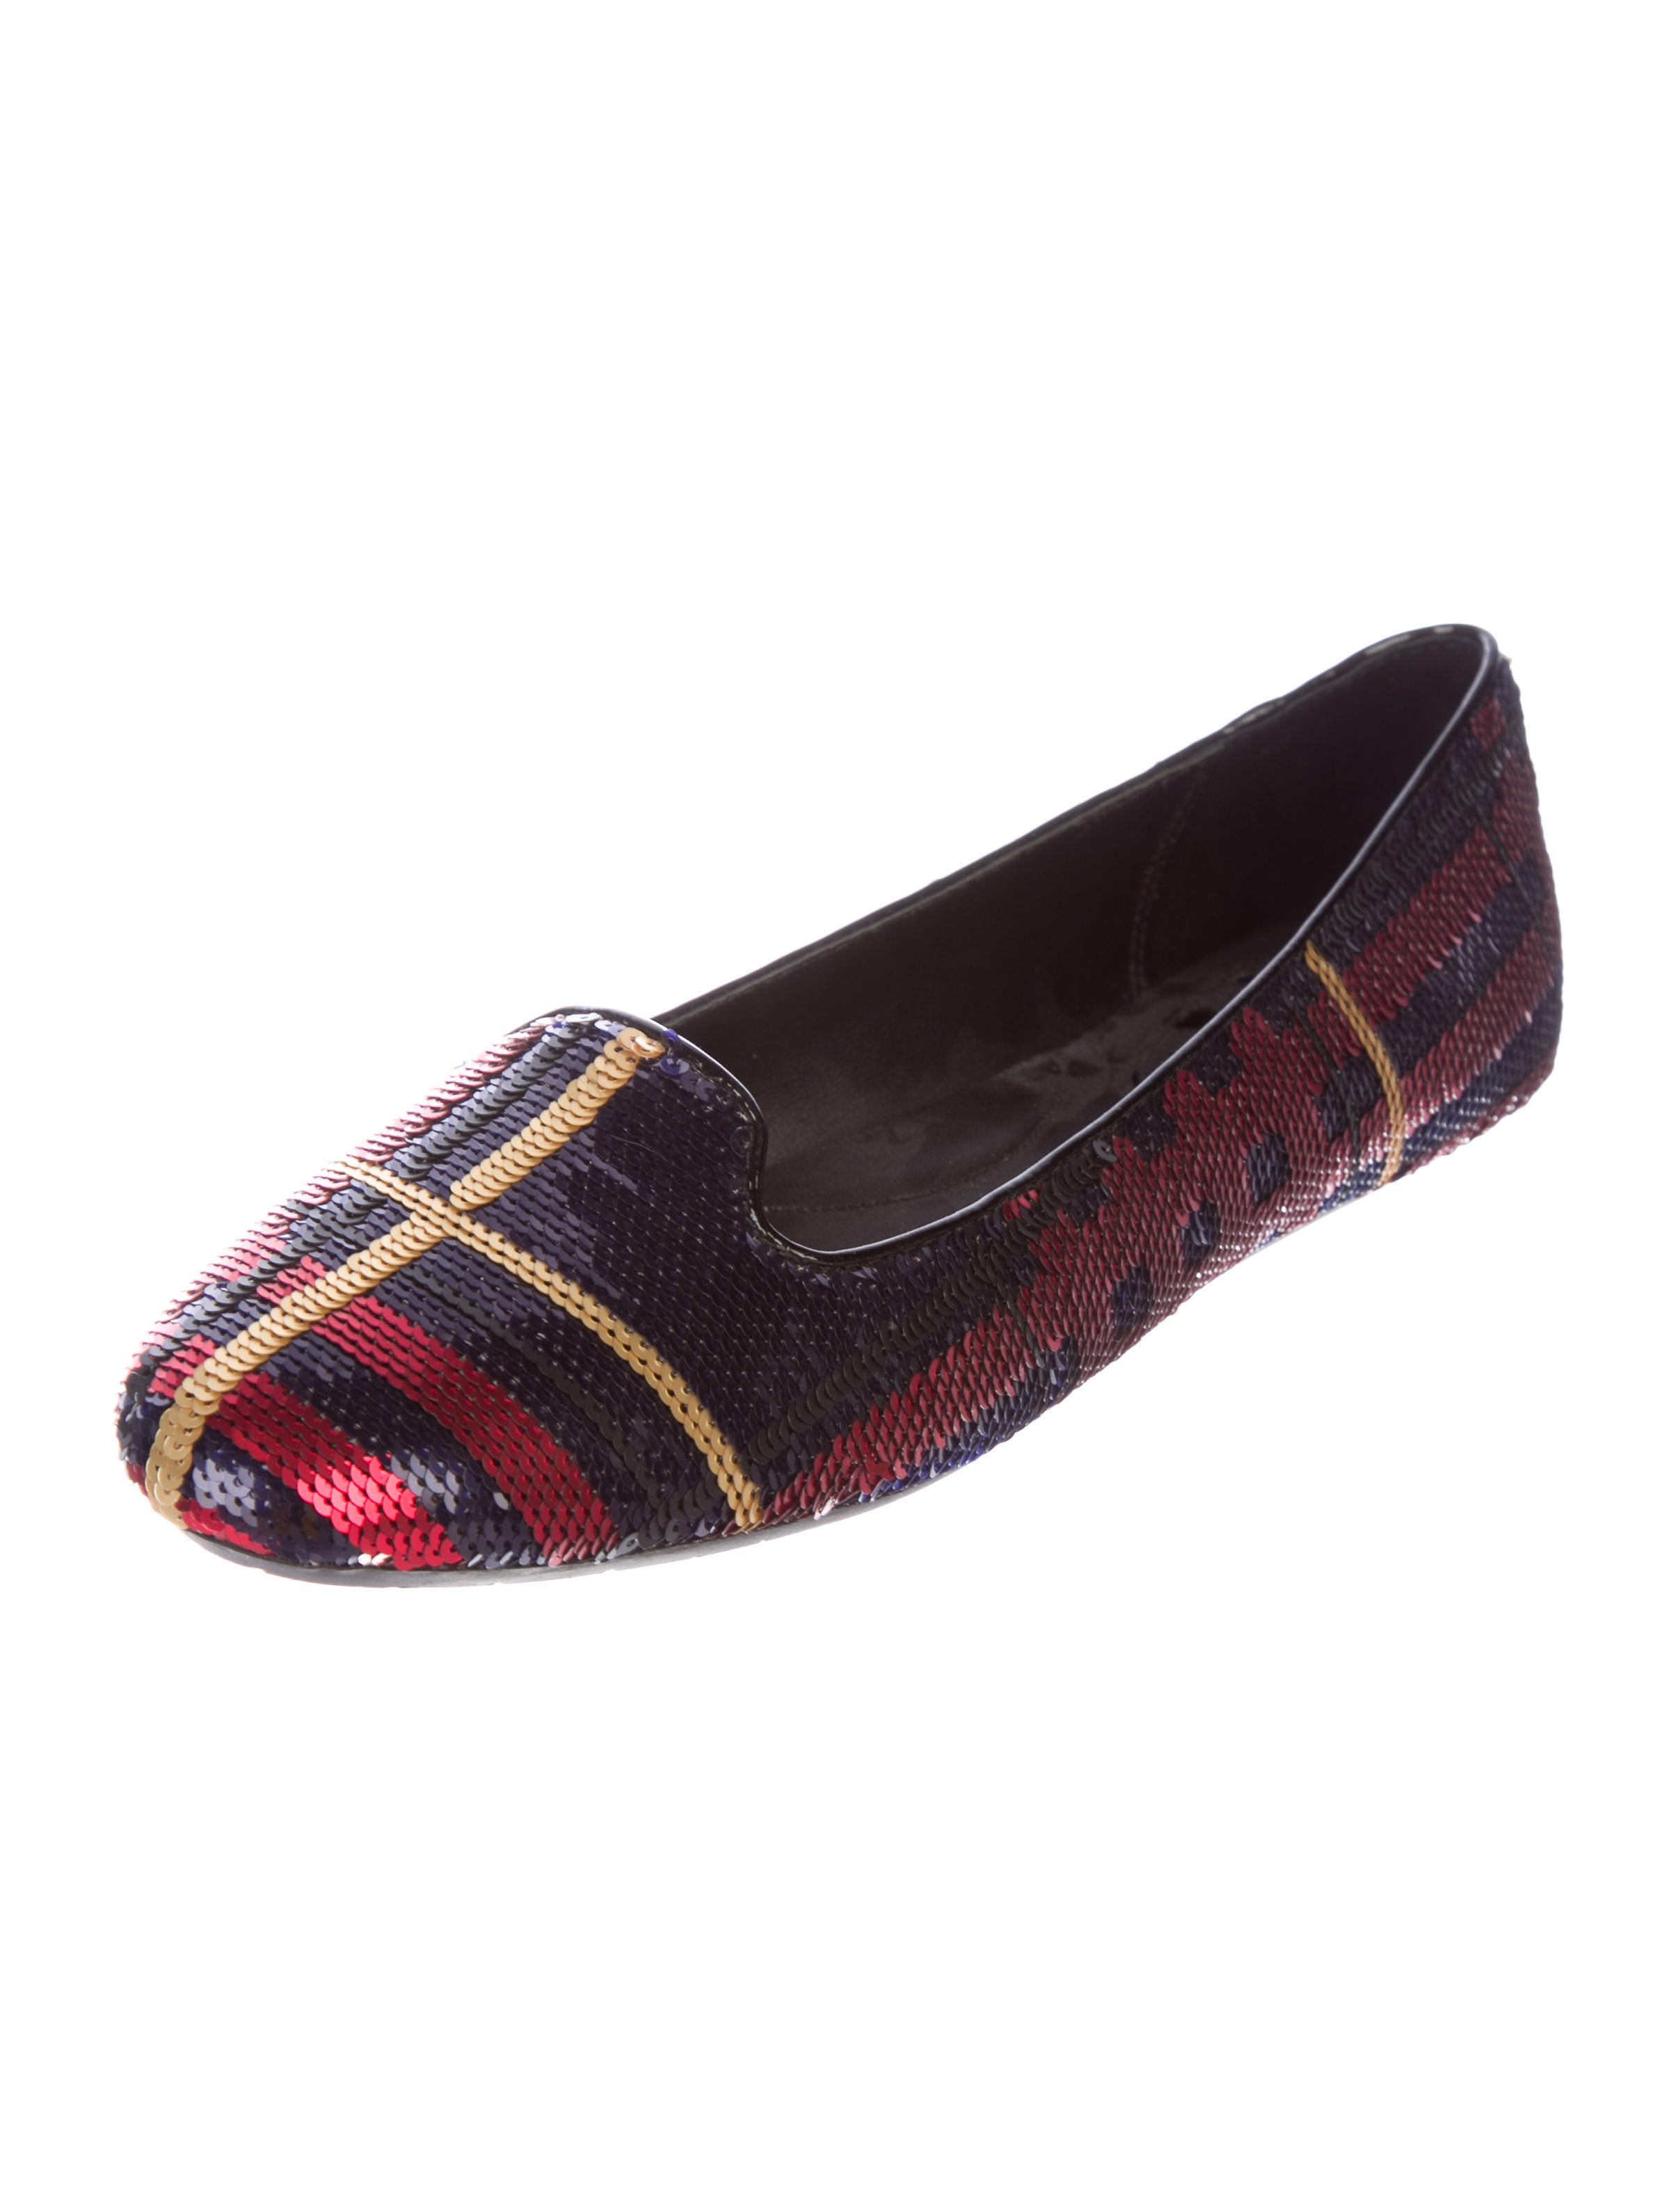 discount eastbay outlet where can you find Coach Debrorah Sequin Loafers cheap sale enjoy classic cheap online lGYiwuA